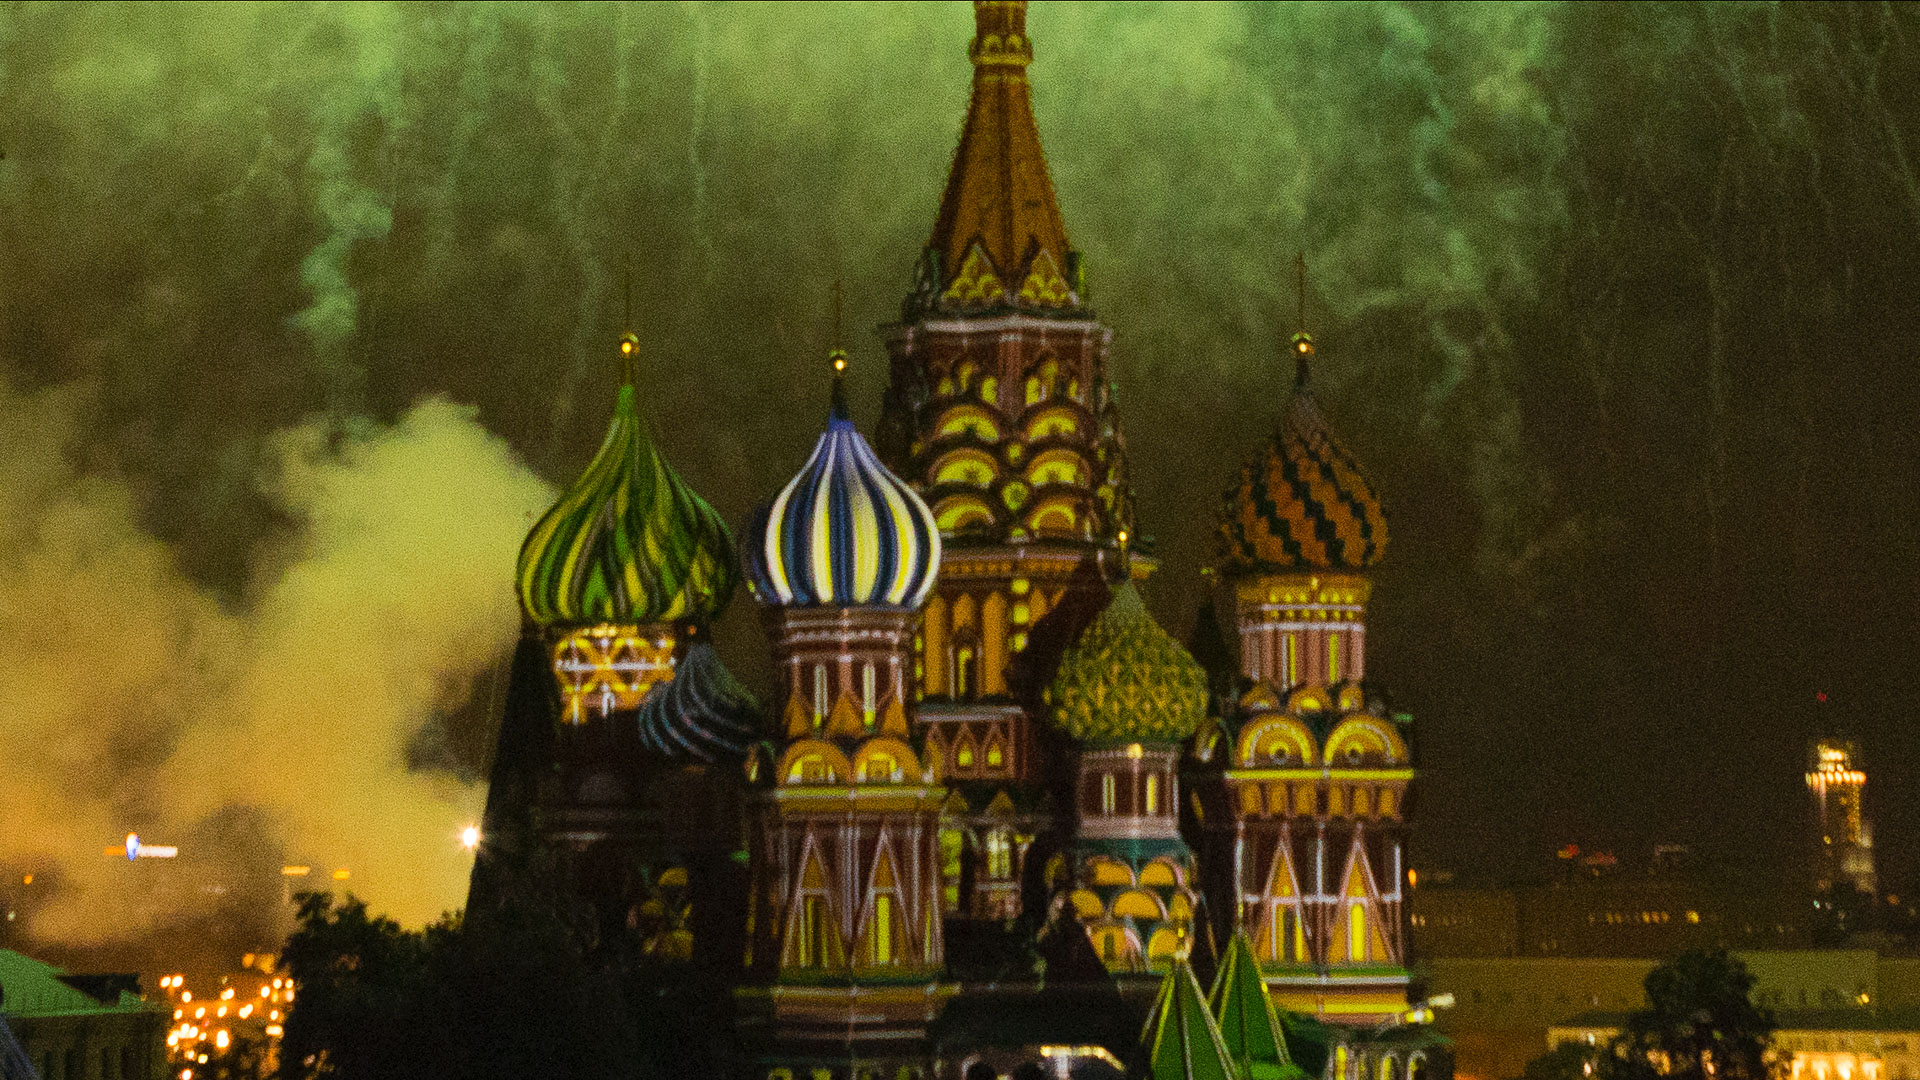 St Basil's Cathedral, Moscow, at night photographed with an ISO setting of 5400